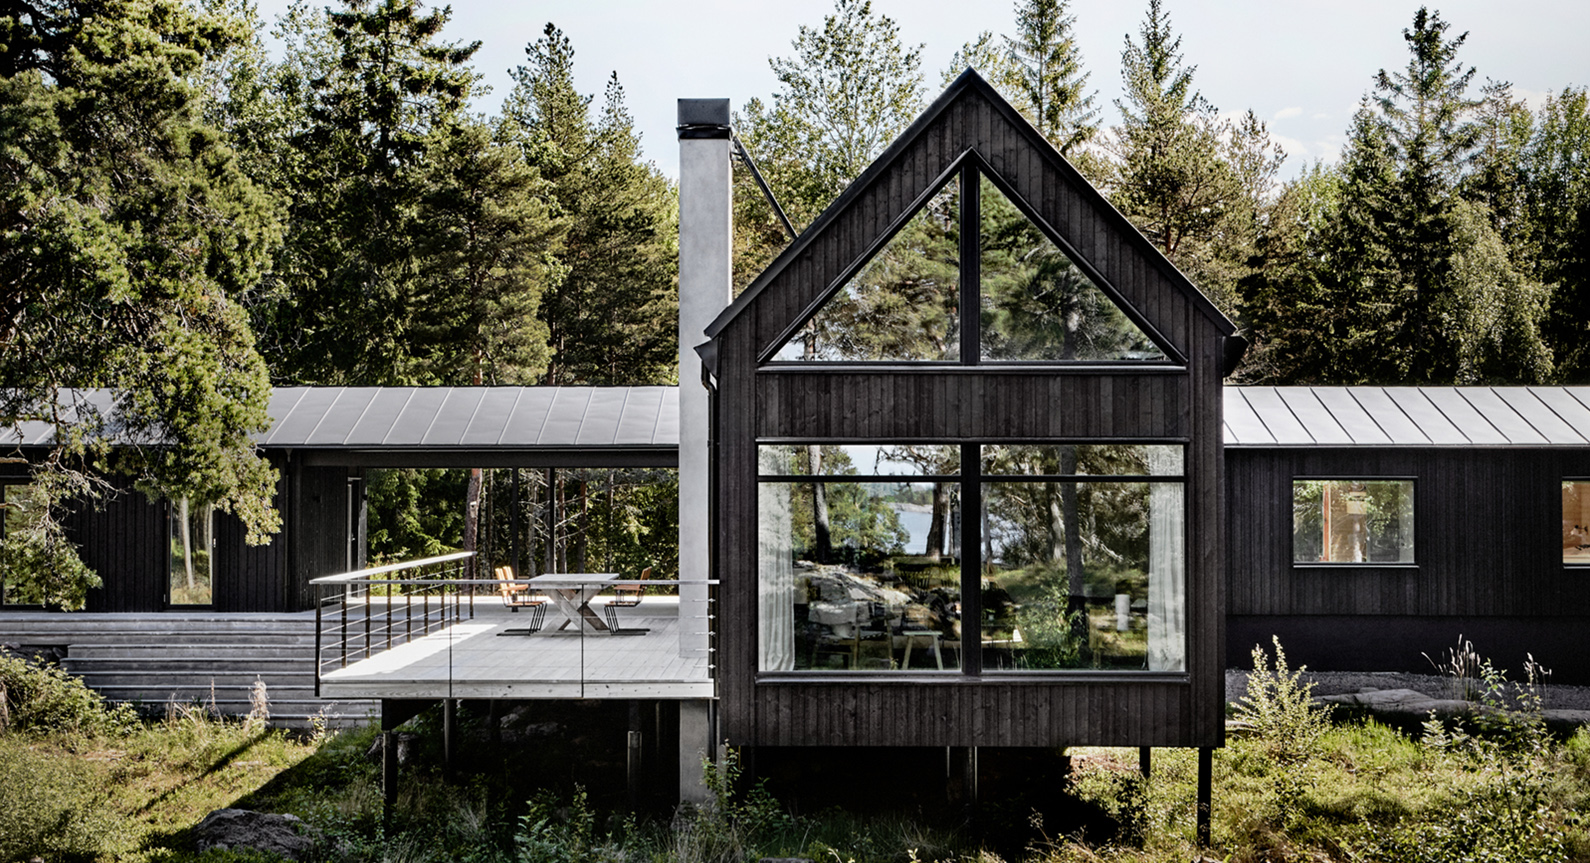 This Stockholm Island Getaway By Kod Arkitekter Is A Place To Recharge The Soul